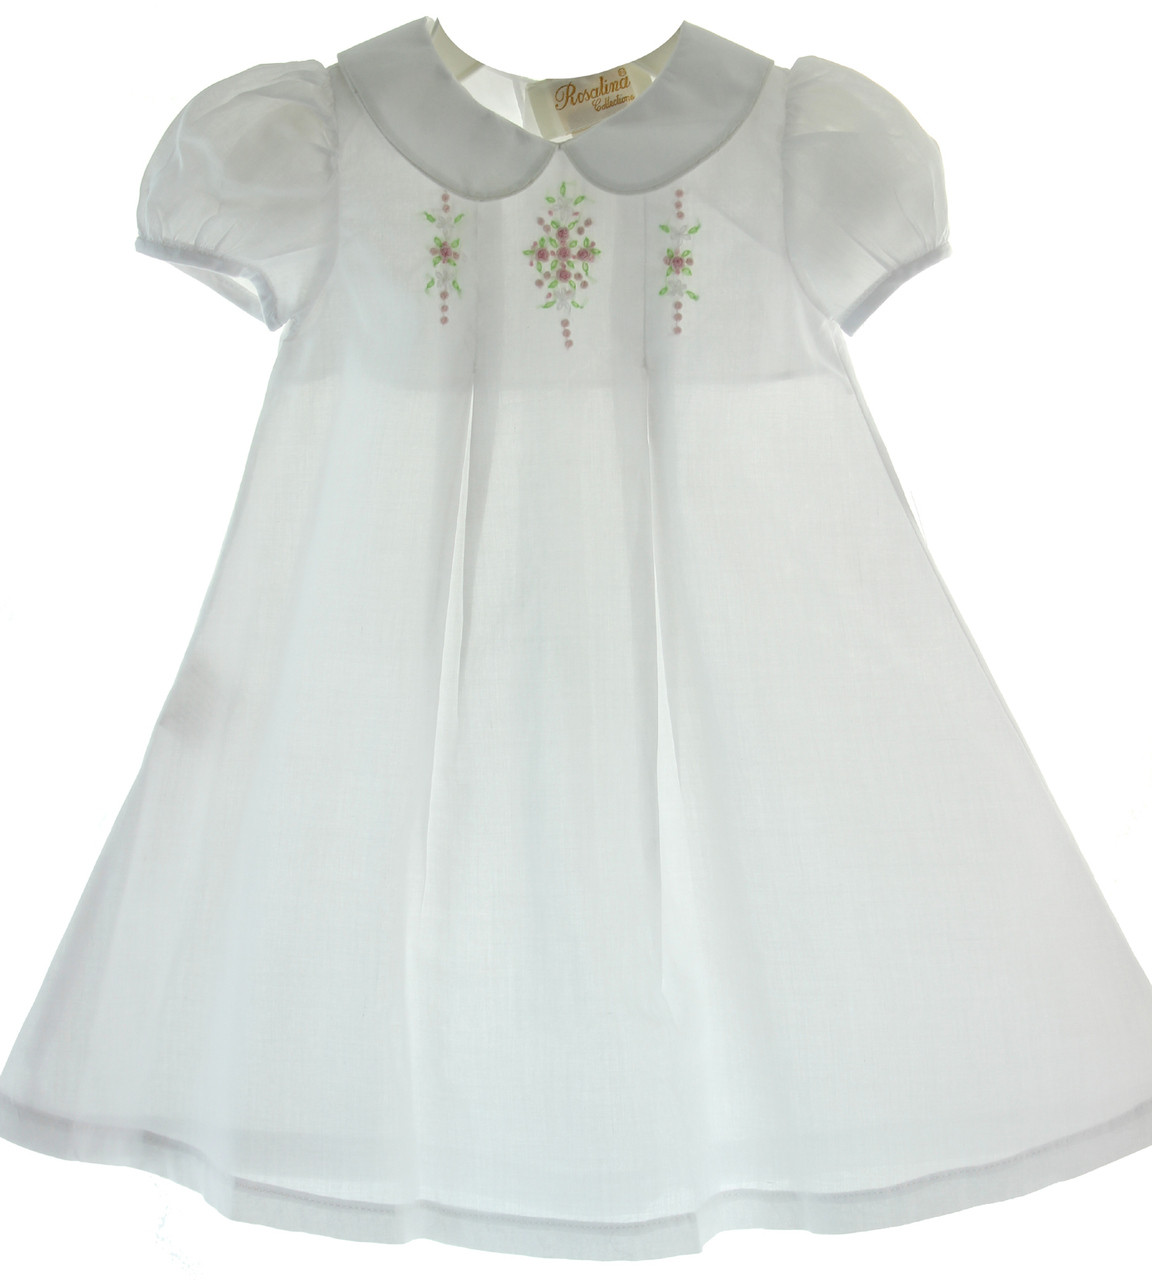 9e4db7fecfda ... Infant Girls White Embroidered Day Dress with Collar Rosalina. Loading  zoom